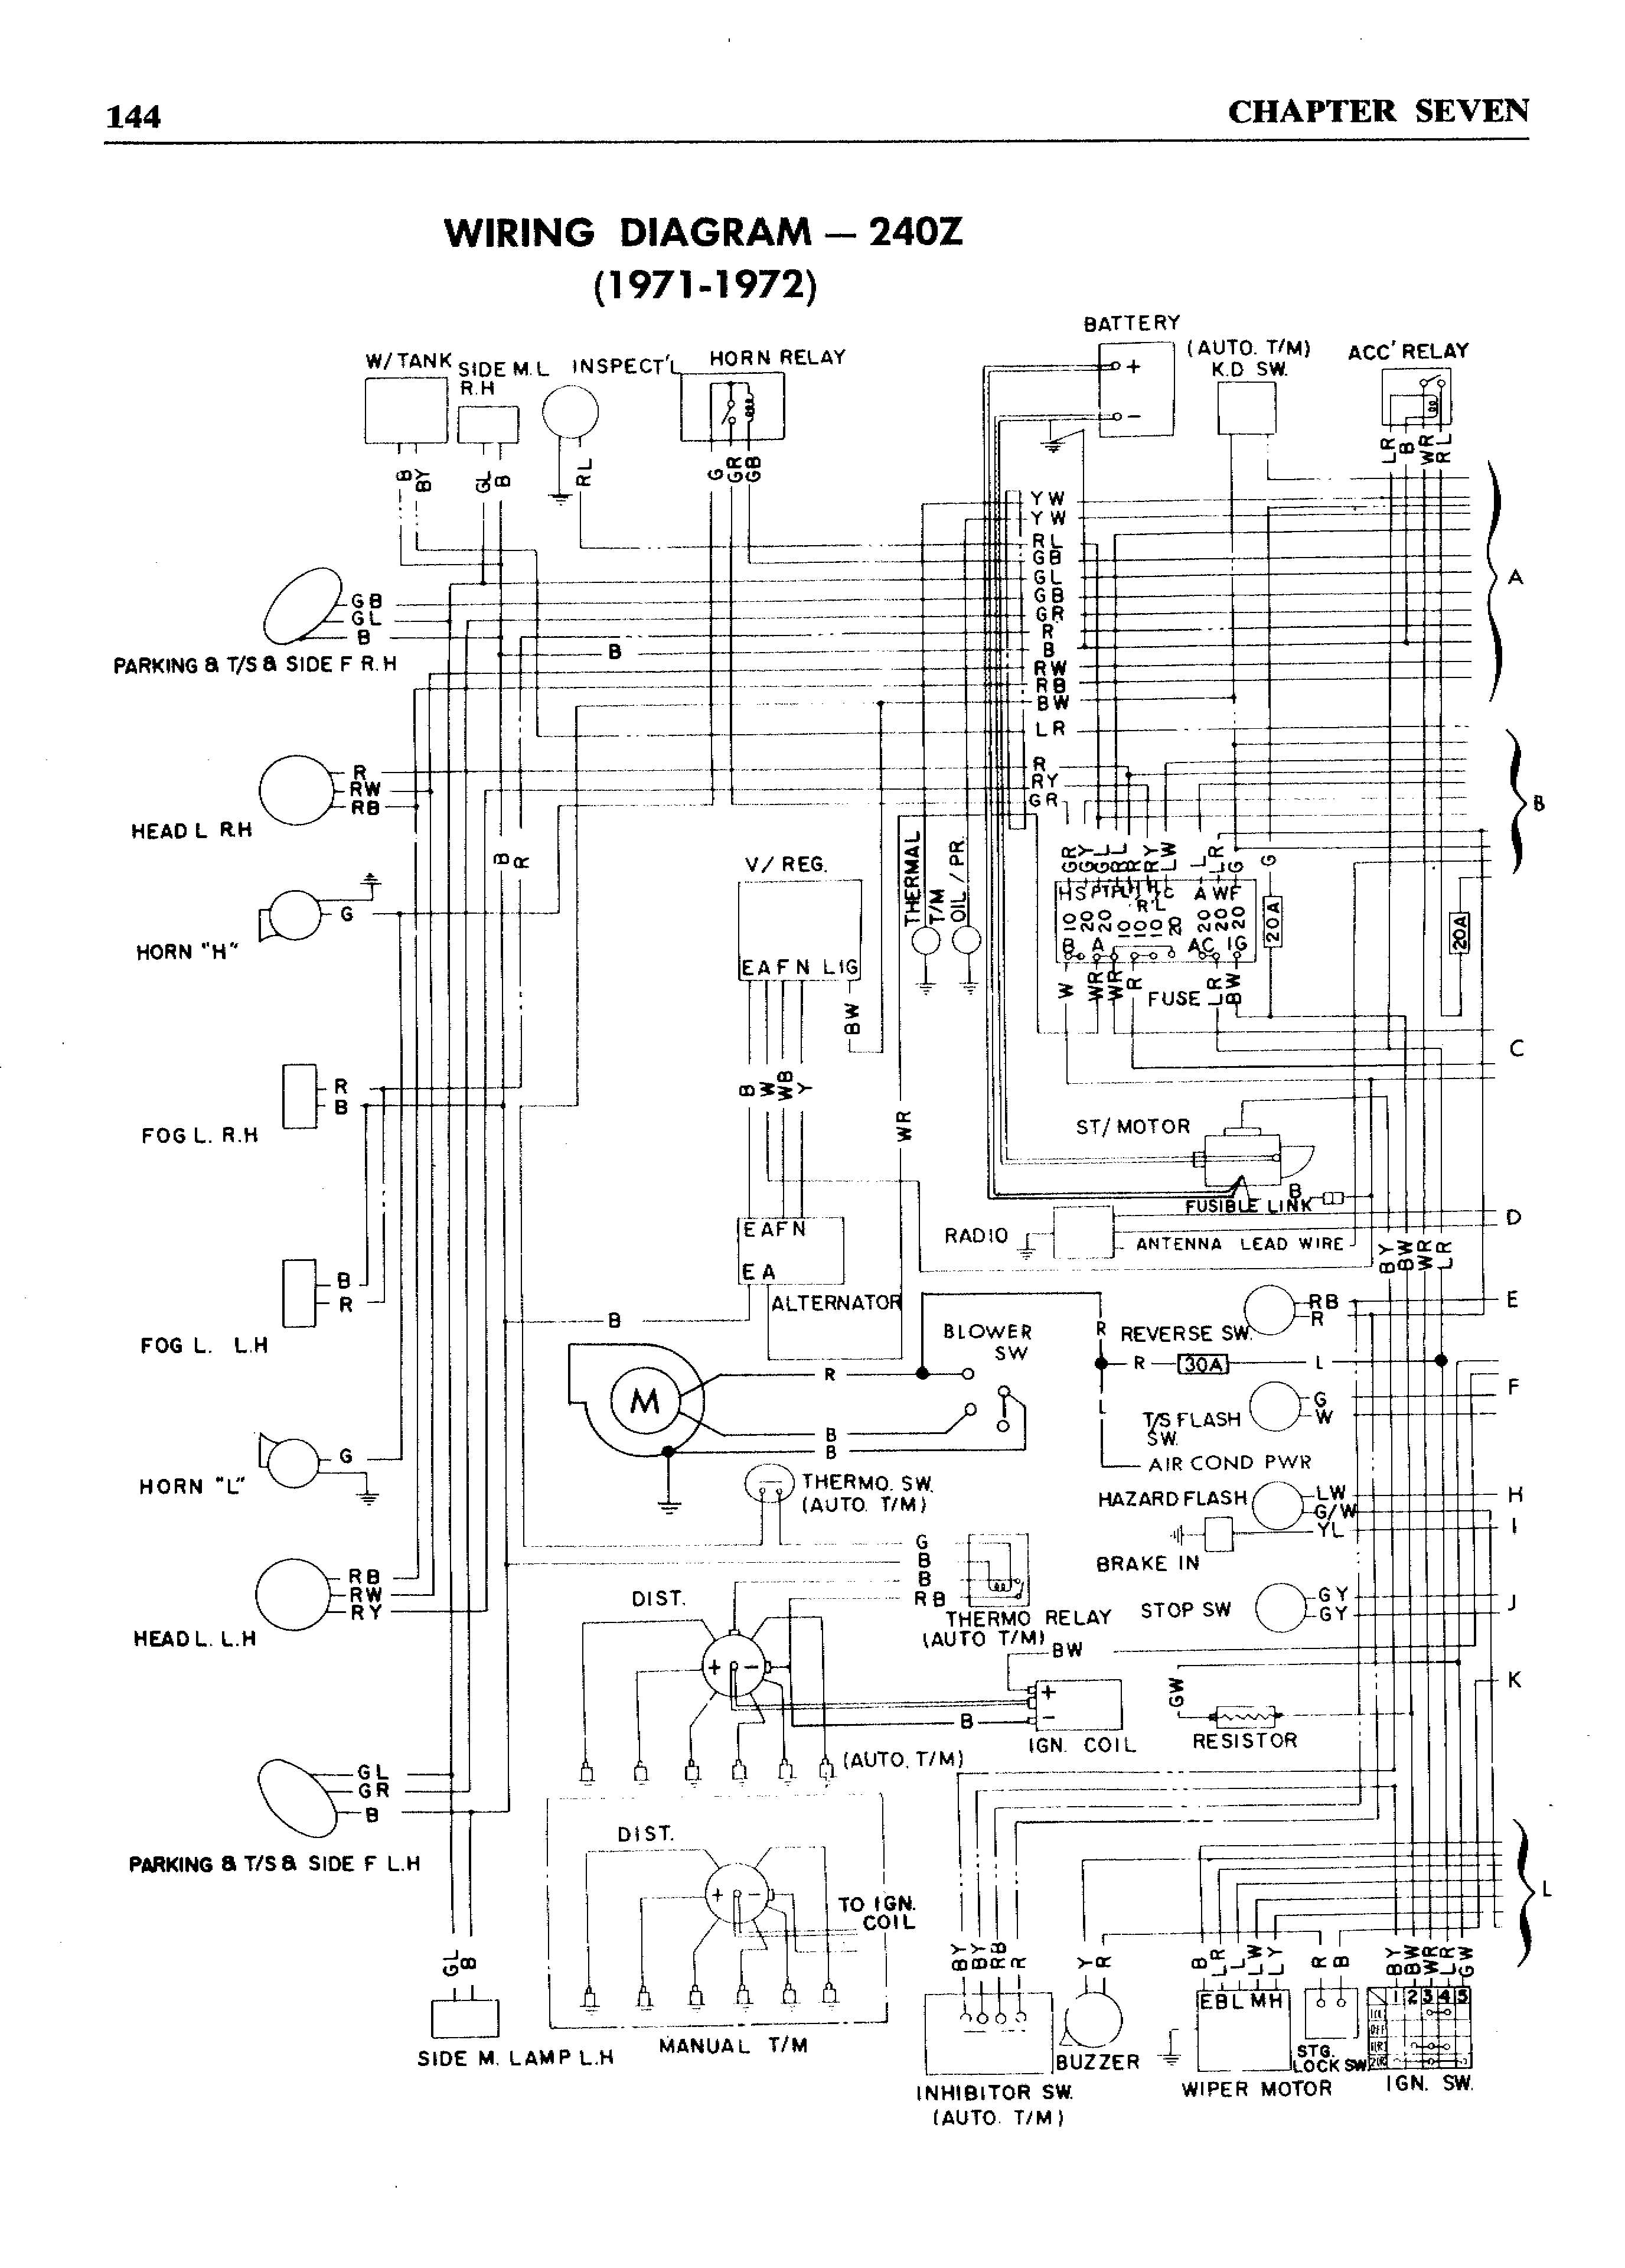 240z wiring diagram   19 wiring diagram images